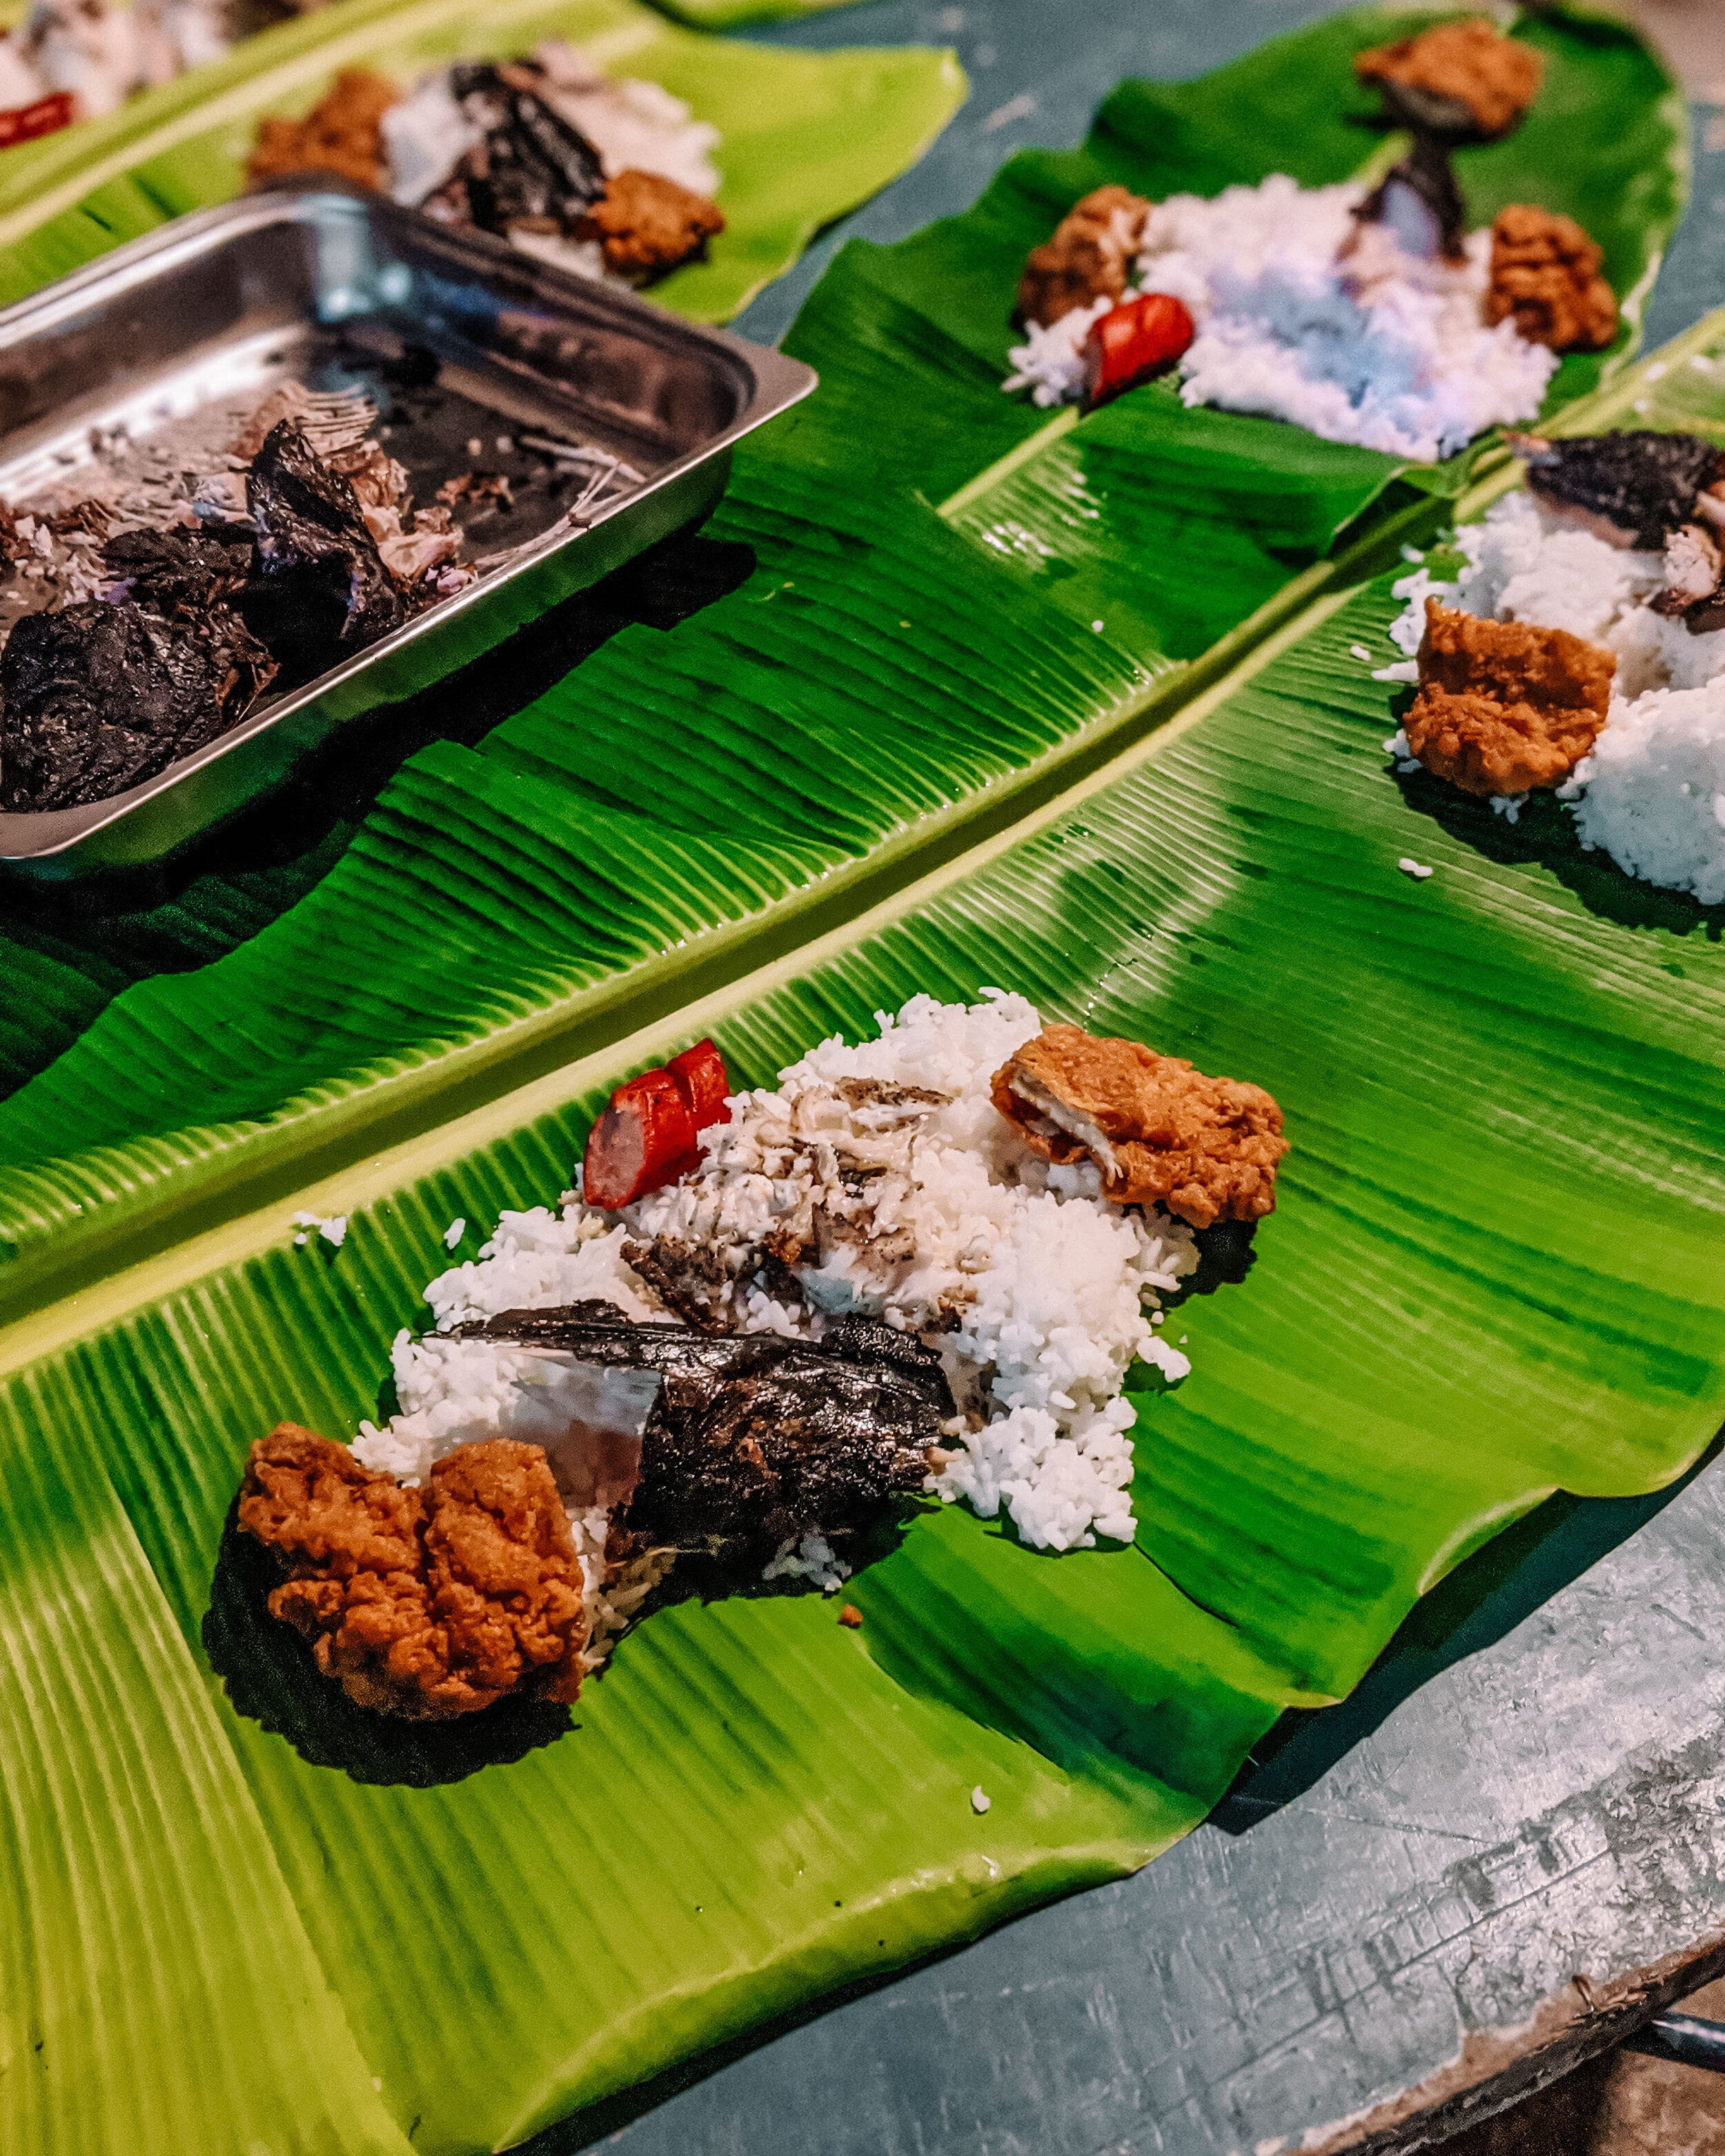 Rachel Off Duty: Boodle Fight, Eating in the Philippines